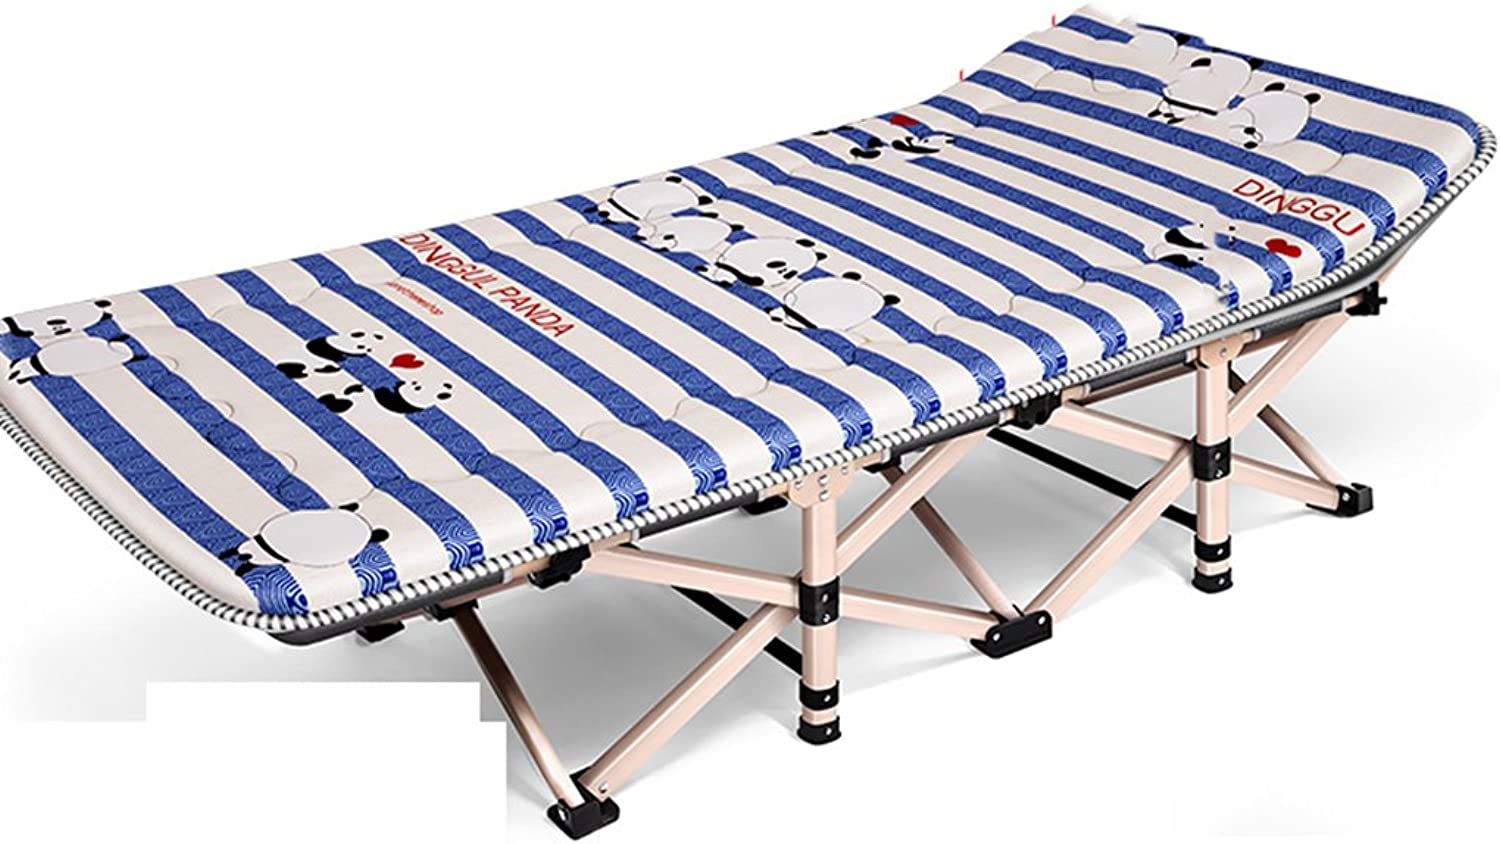 Hammocks & Loungers Adult Bed Camping Siesta Lounge Chair Office Bed Folding Bed Single Bed (color   bluee1, Size   190  71  36 cm)